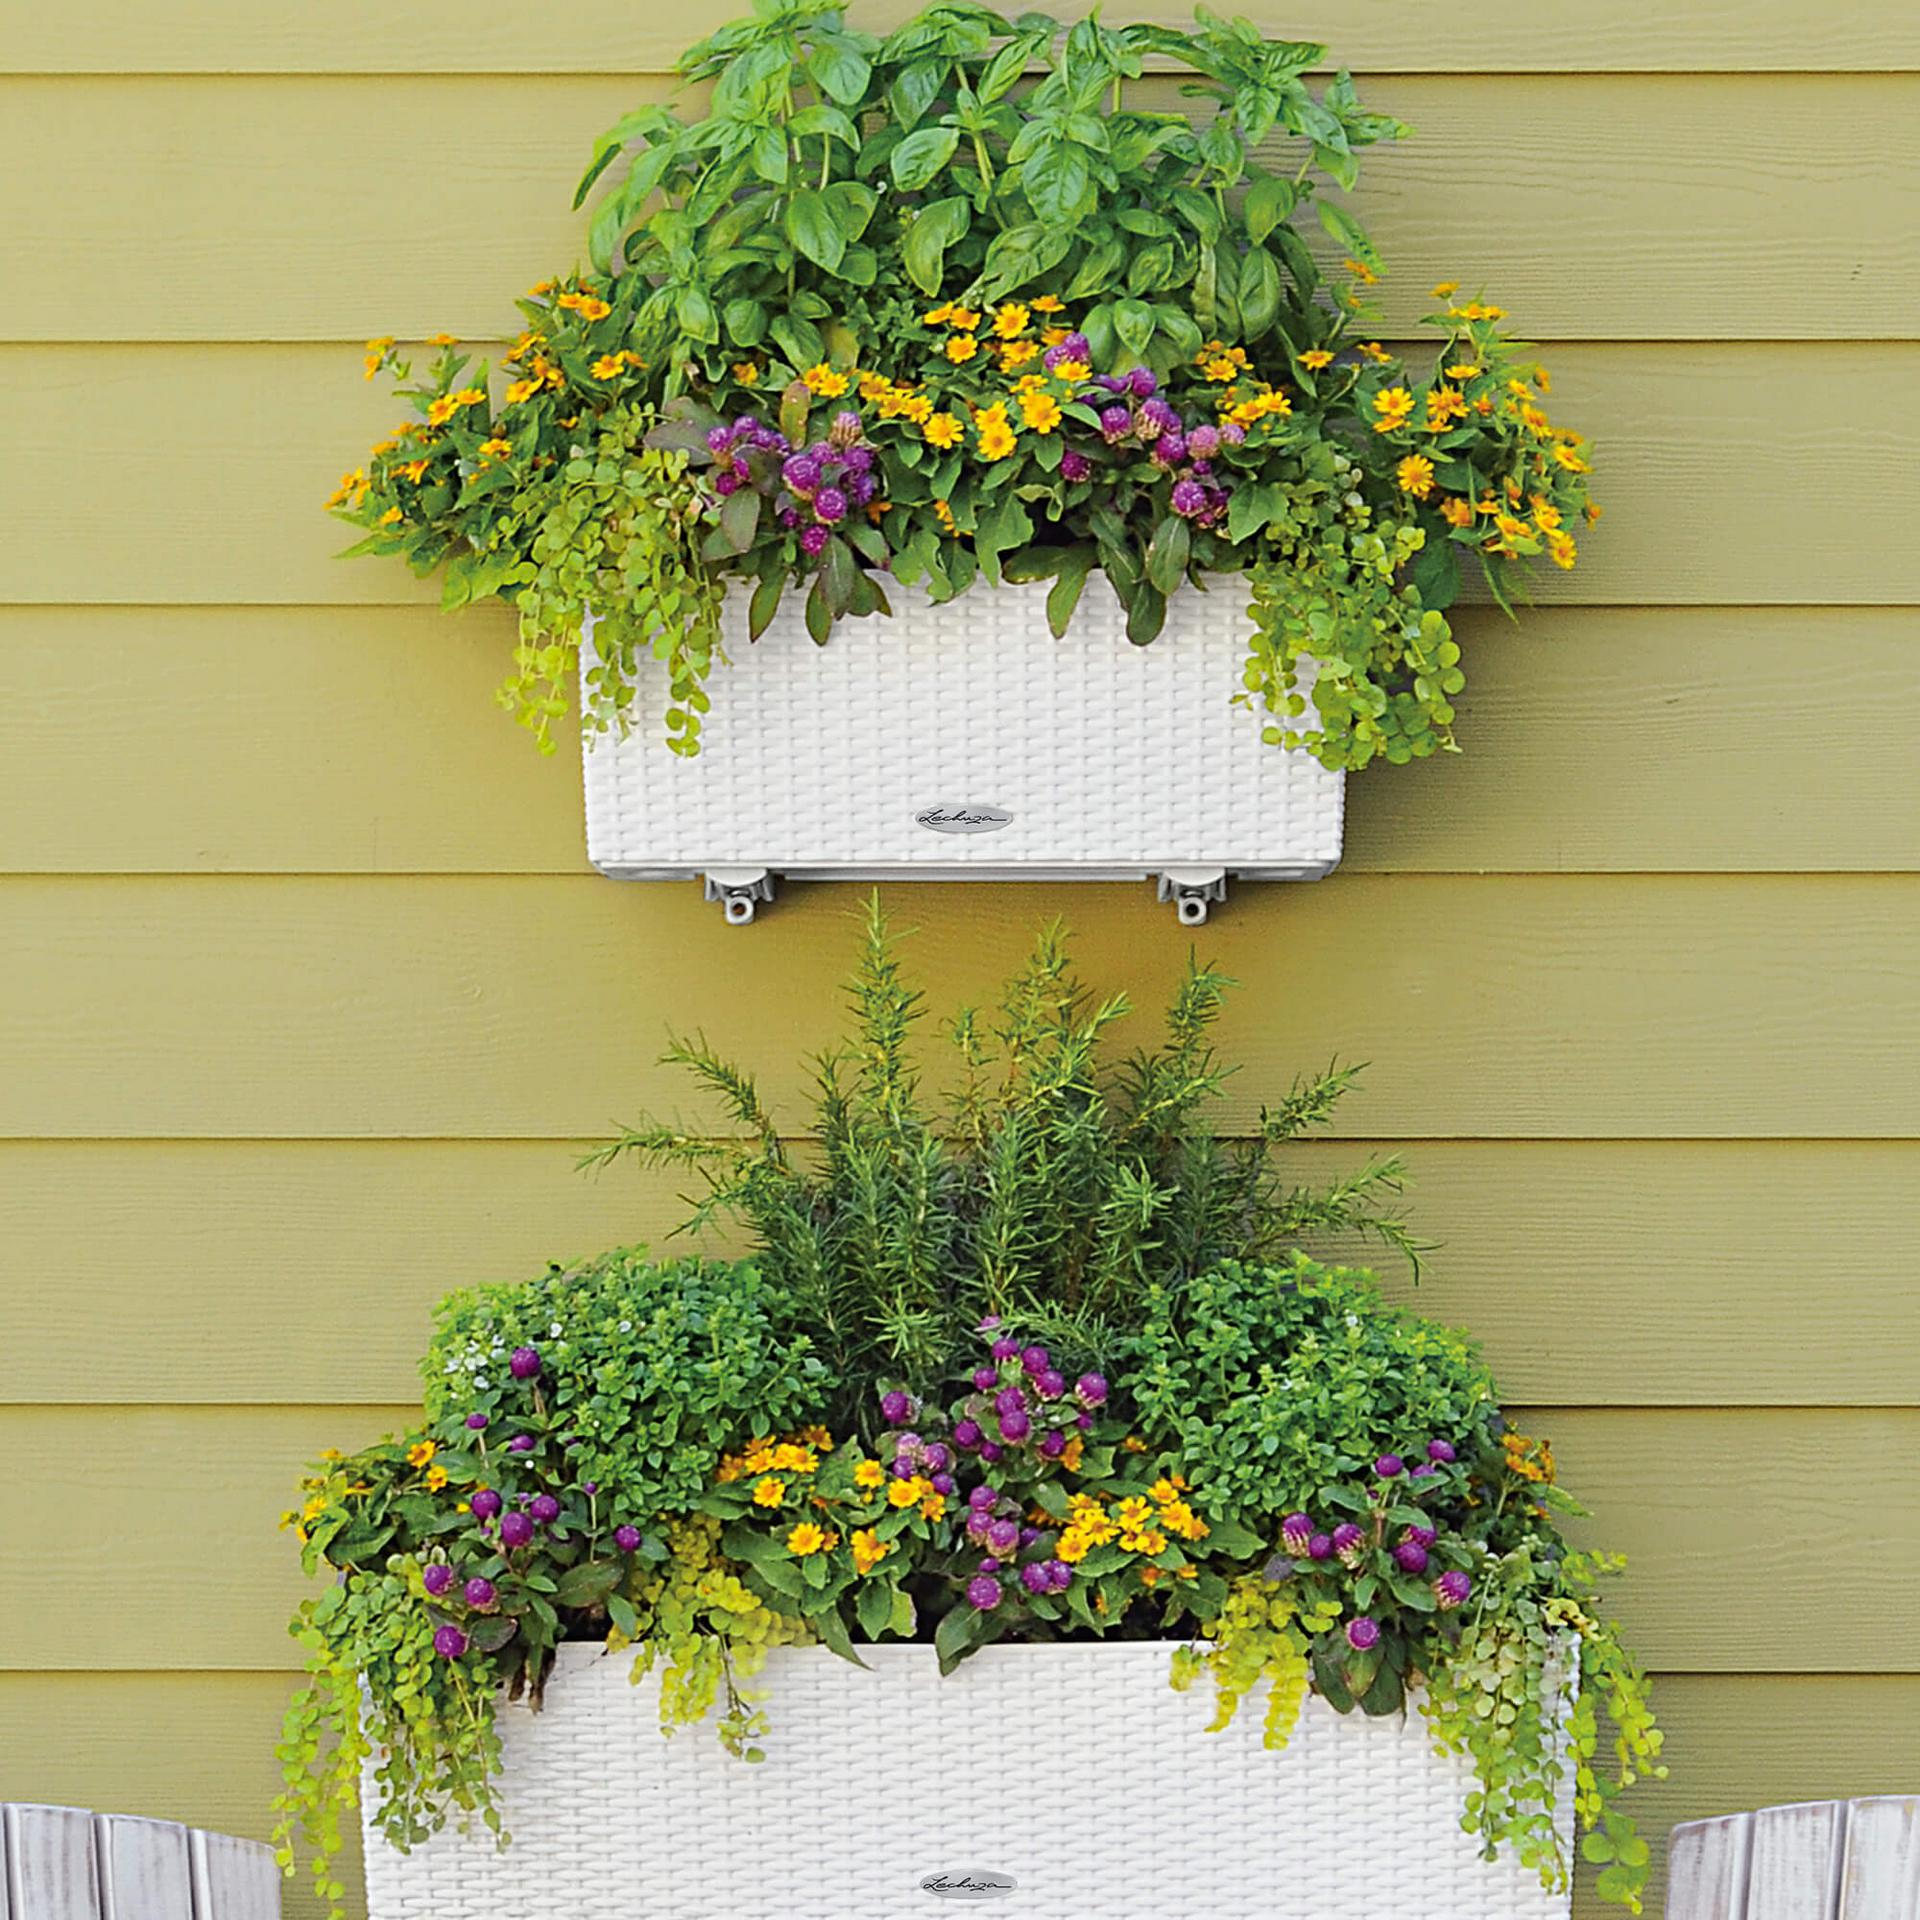 le_balconera-cottage_product_addi_02